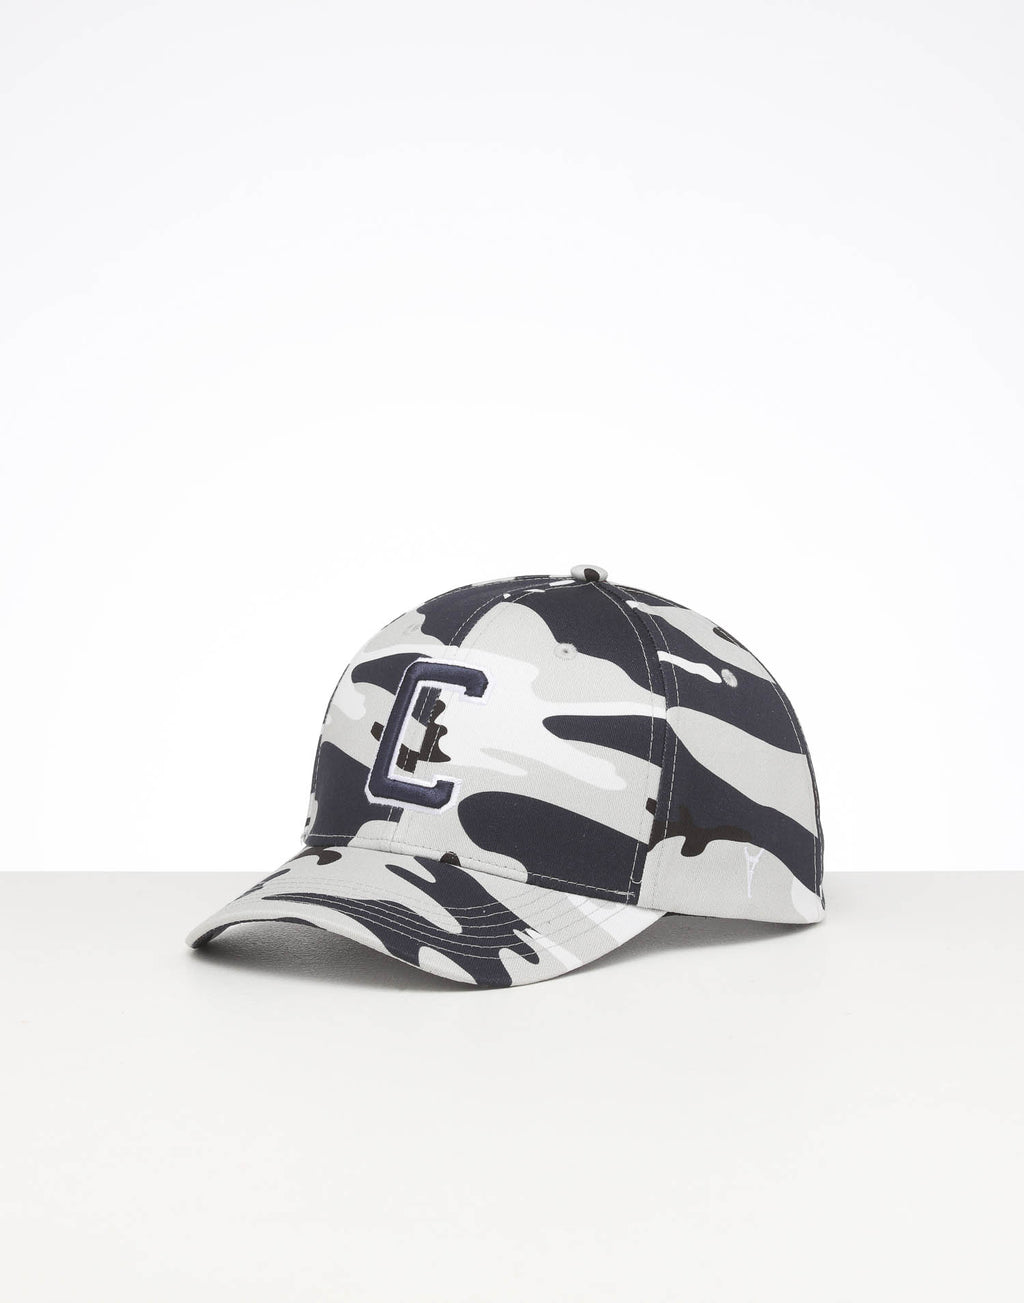 CARRÉ CAPITAL C GRAND SNAPBACK BLUE CAMO